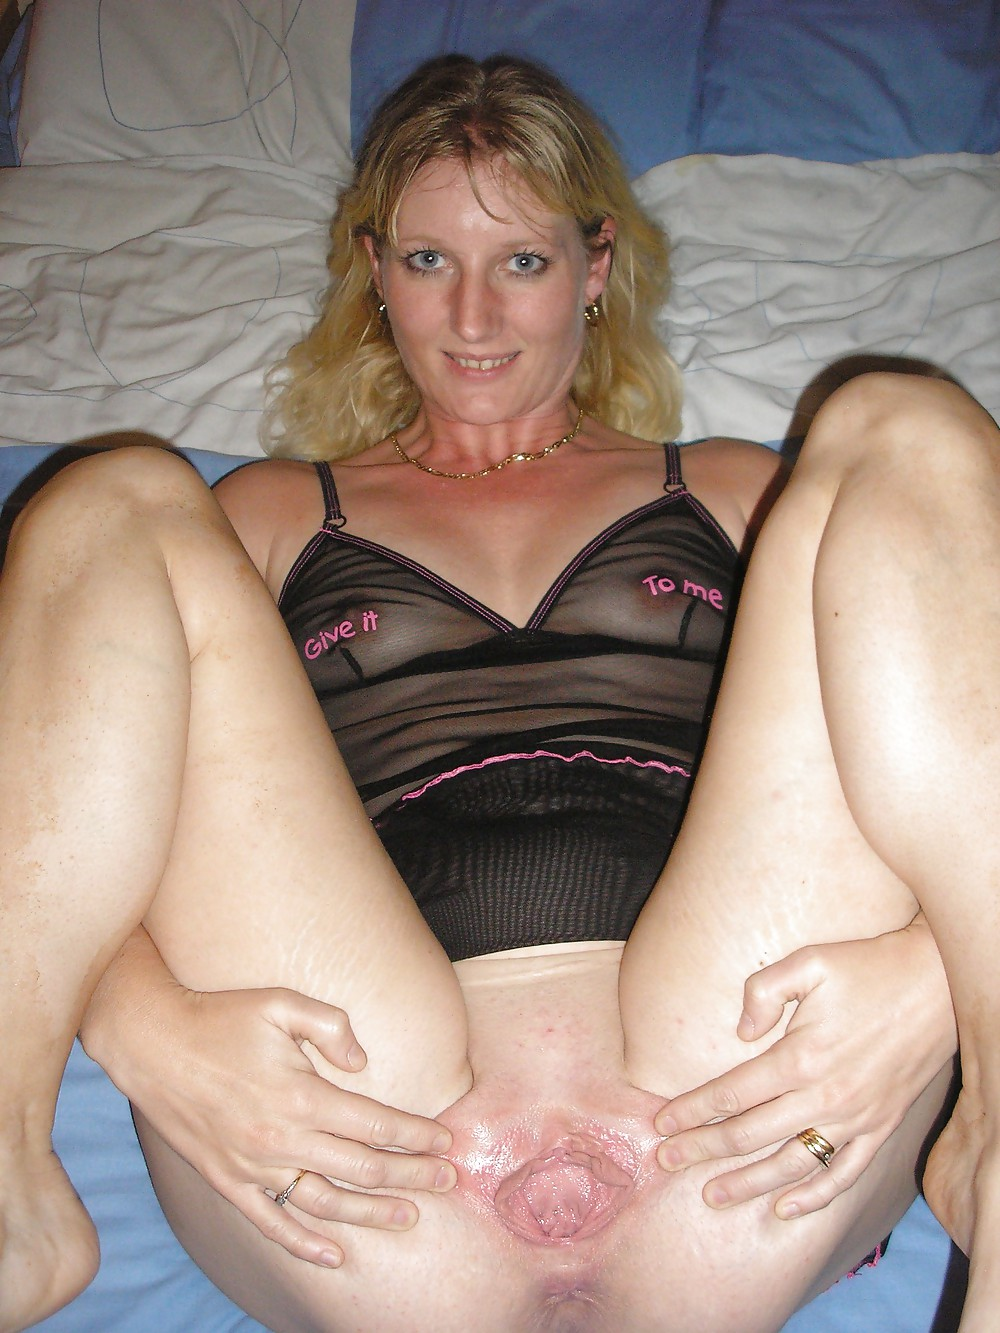 Milf Blonde Woman Panties Amateur Mature Wife Wet Pussy -6531